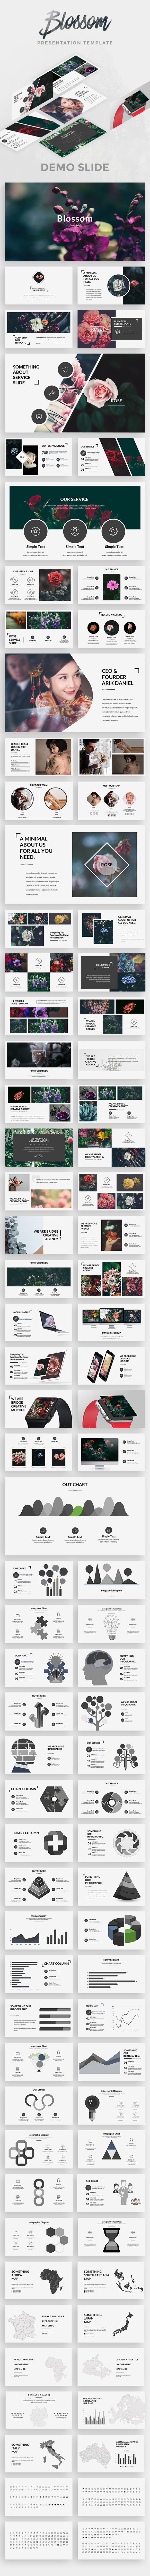 Blossom Creative Google Slide Template - Google Slides Presentation Templates